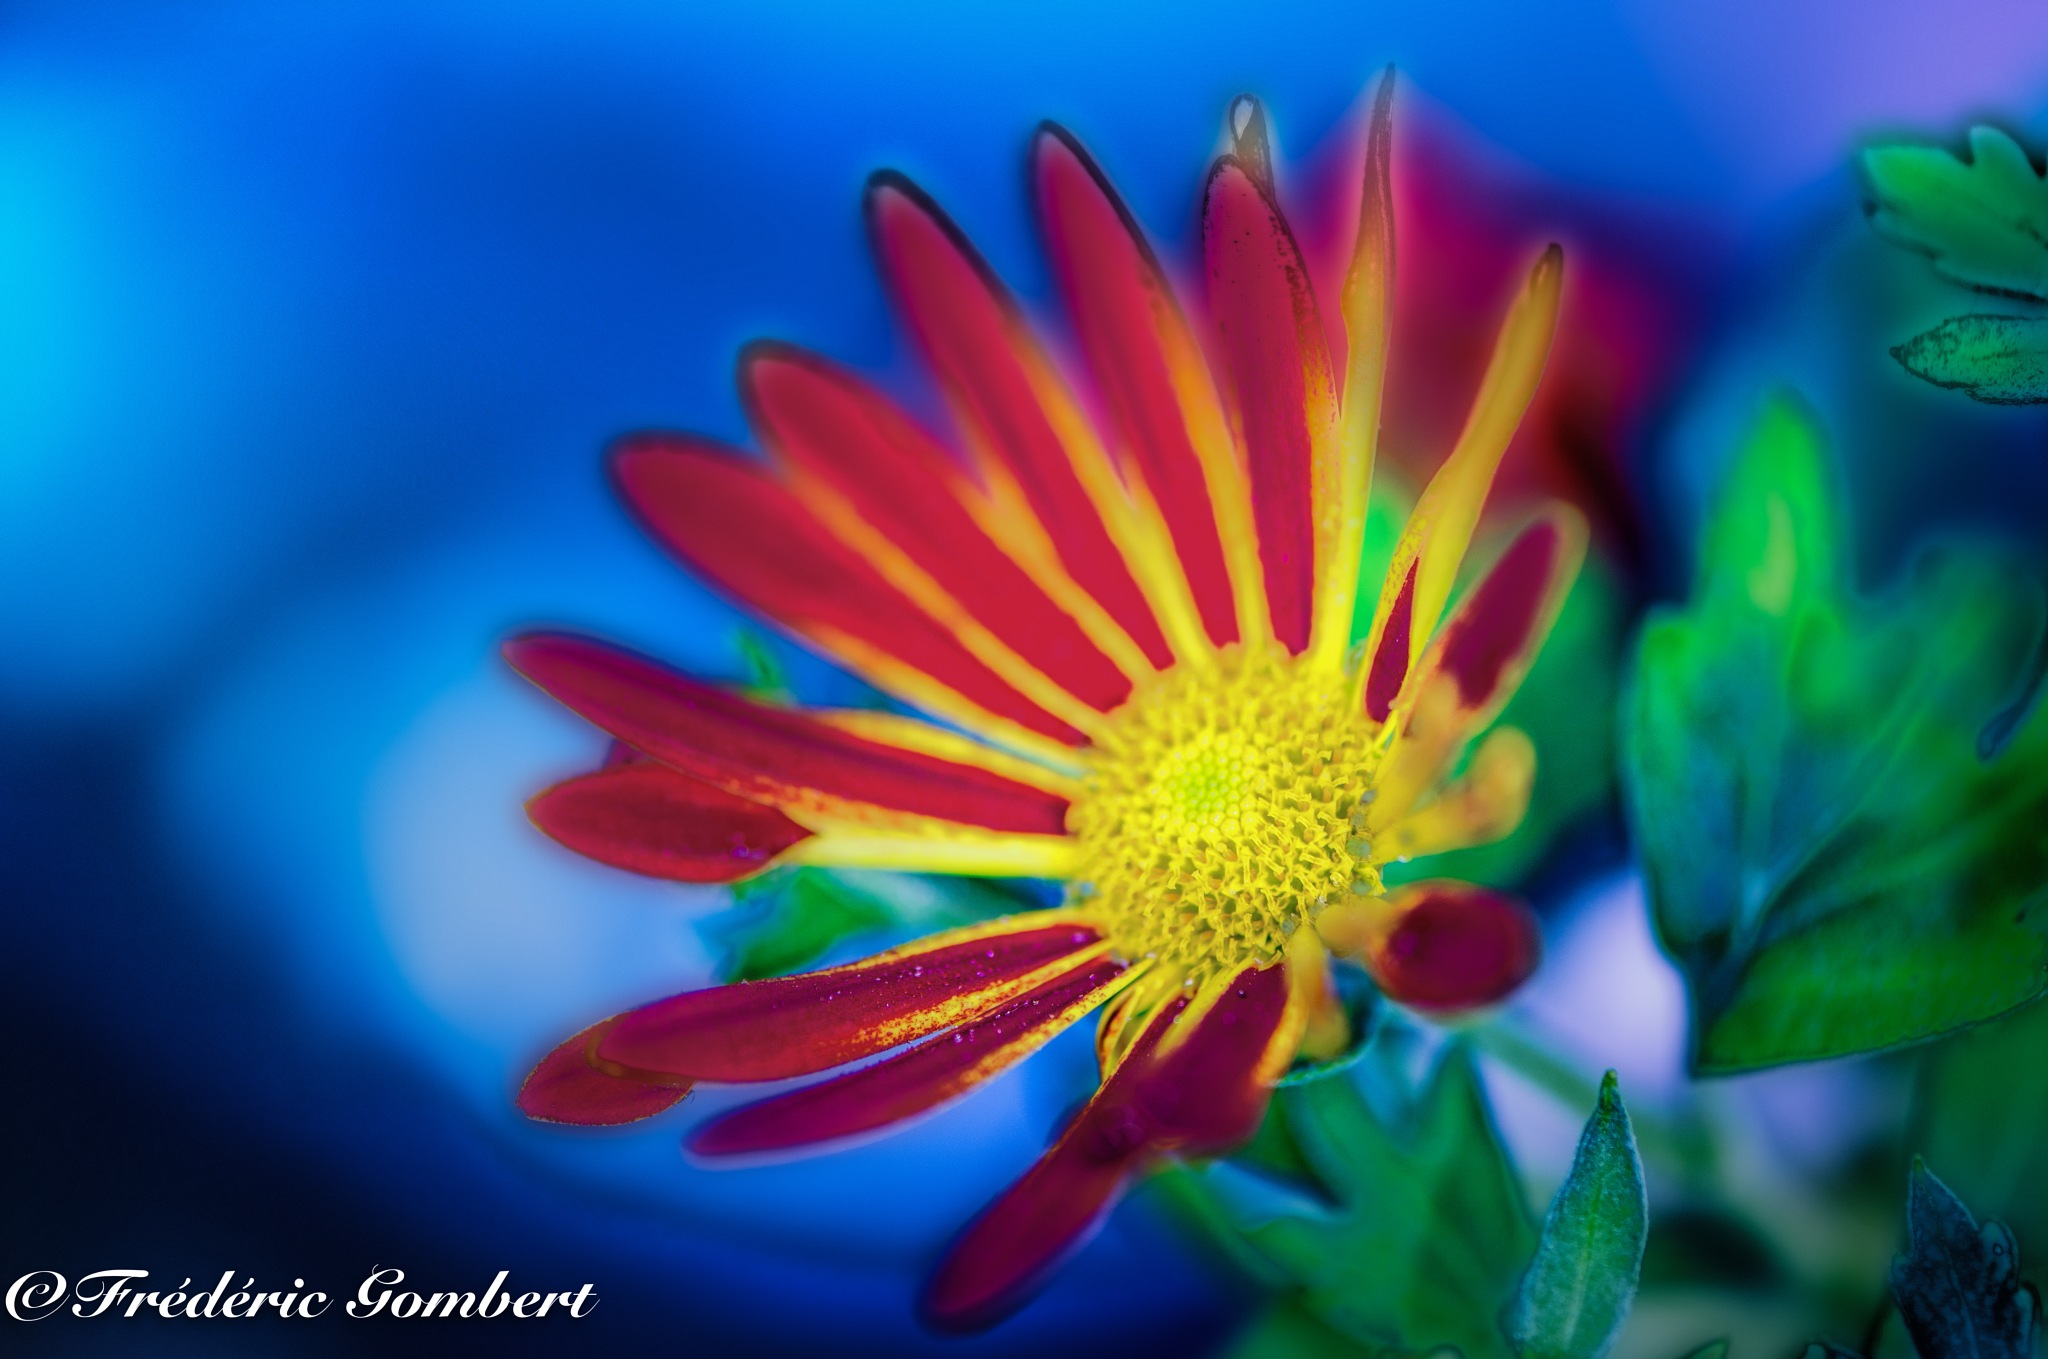 color explosion of Spring by Frederic Gombert